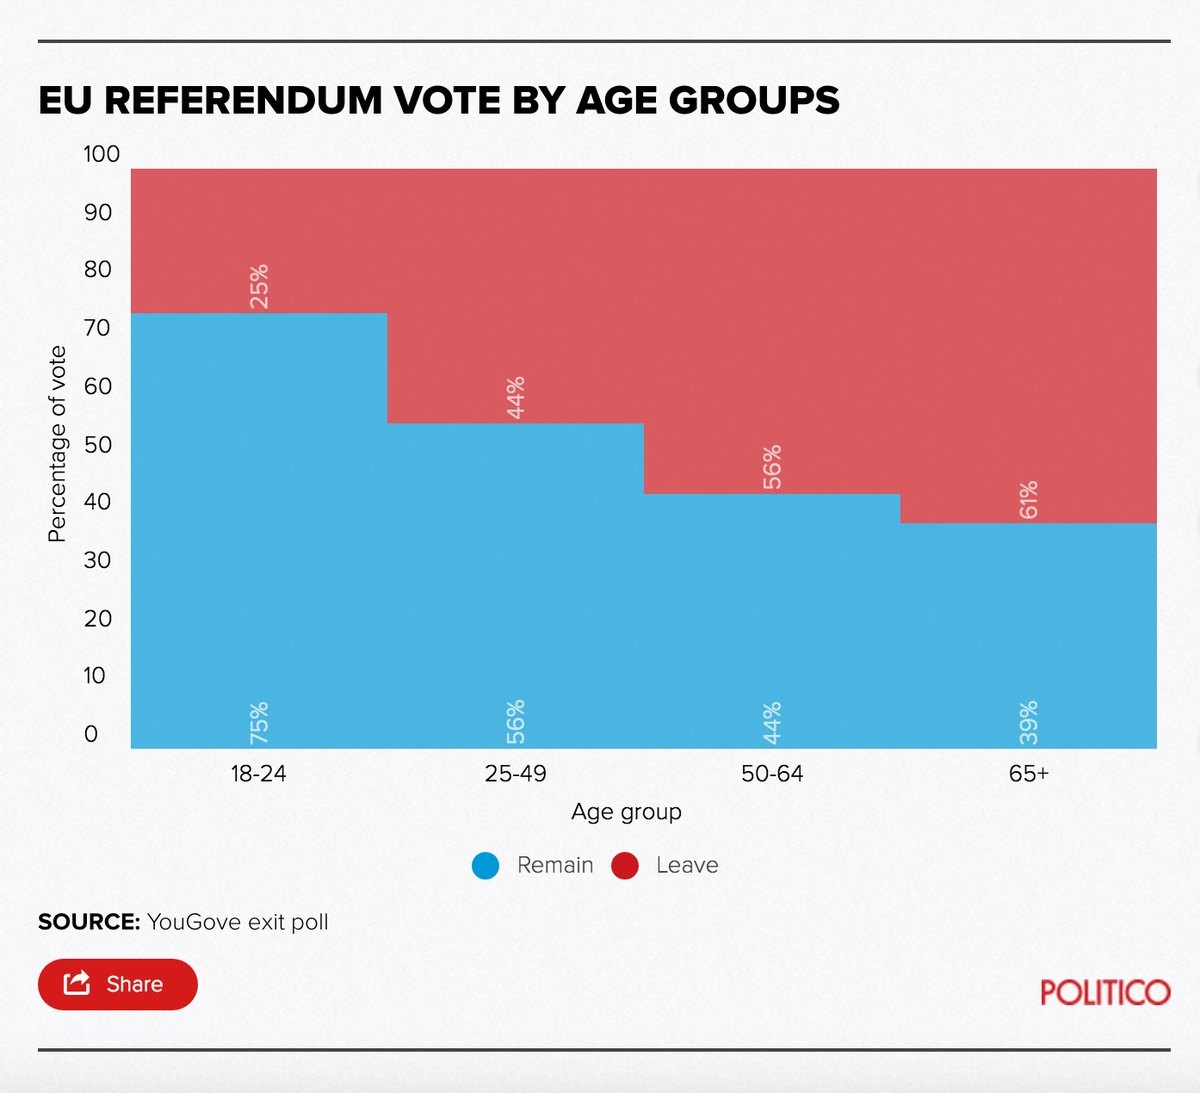 http://www.newstatesman.com/politics/staggers/2016/06/how-did-different-demographic-groups-vote-eu-referendum